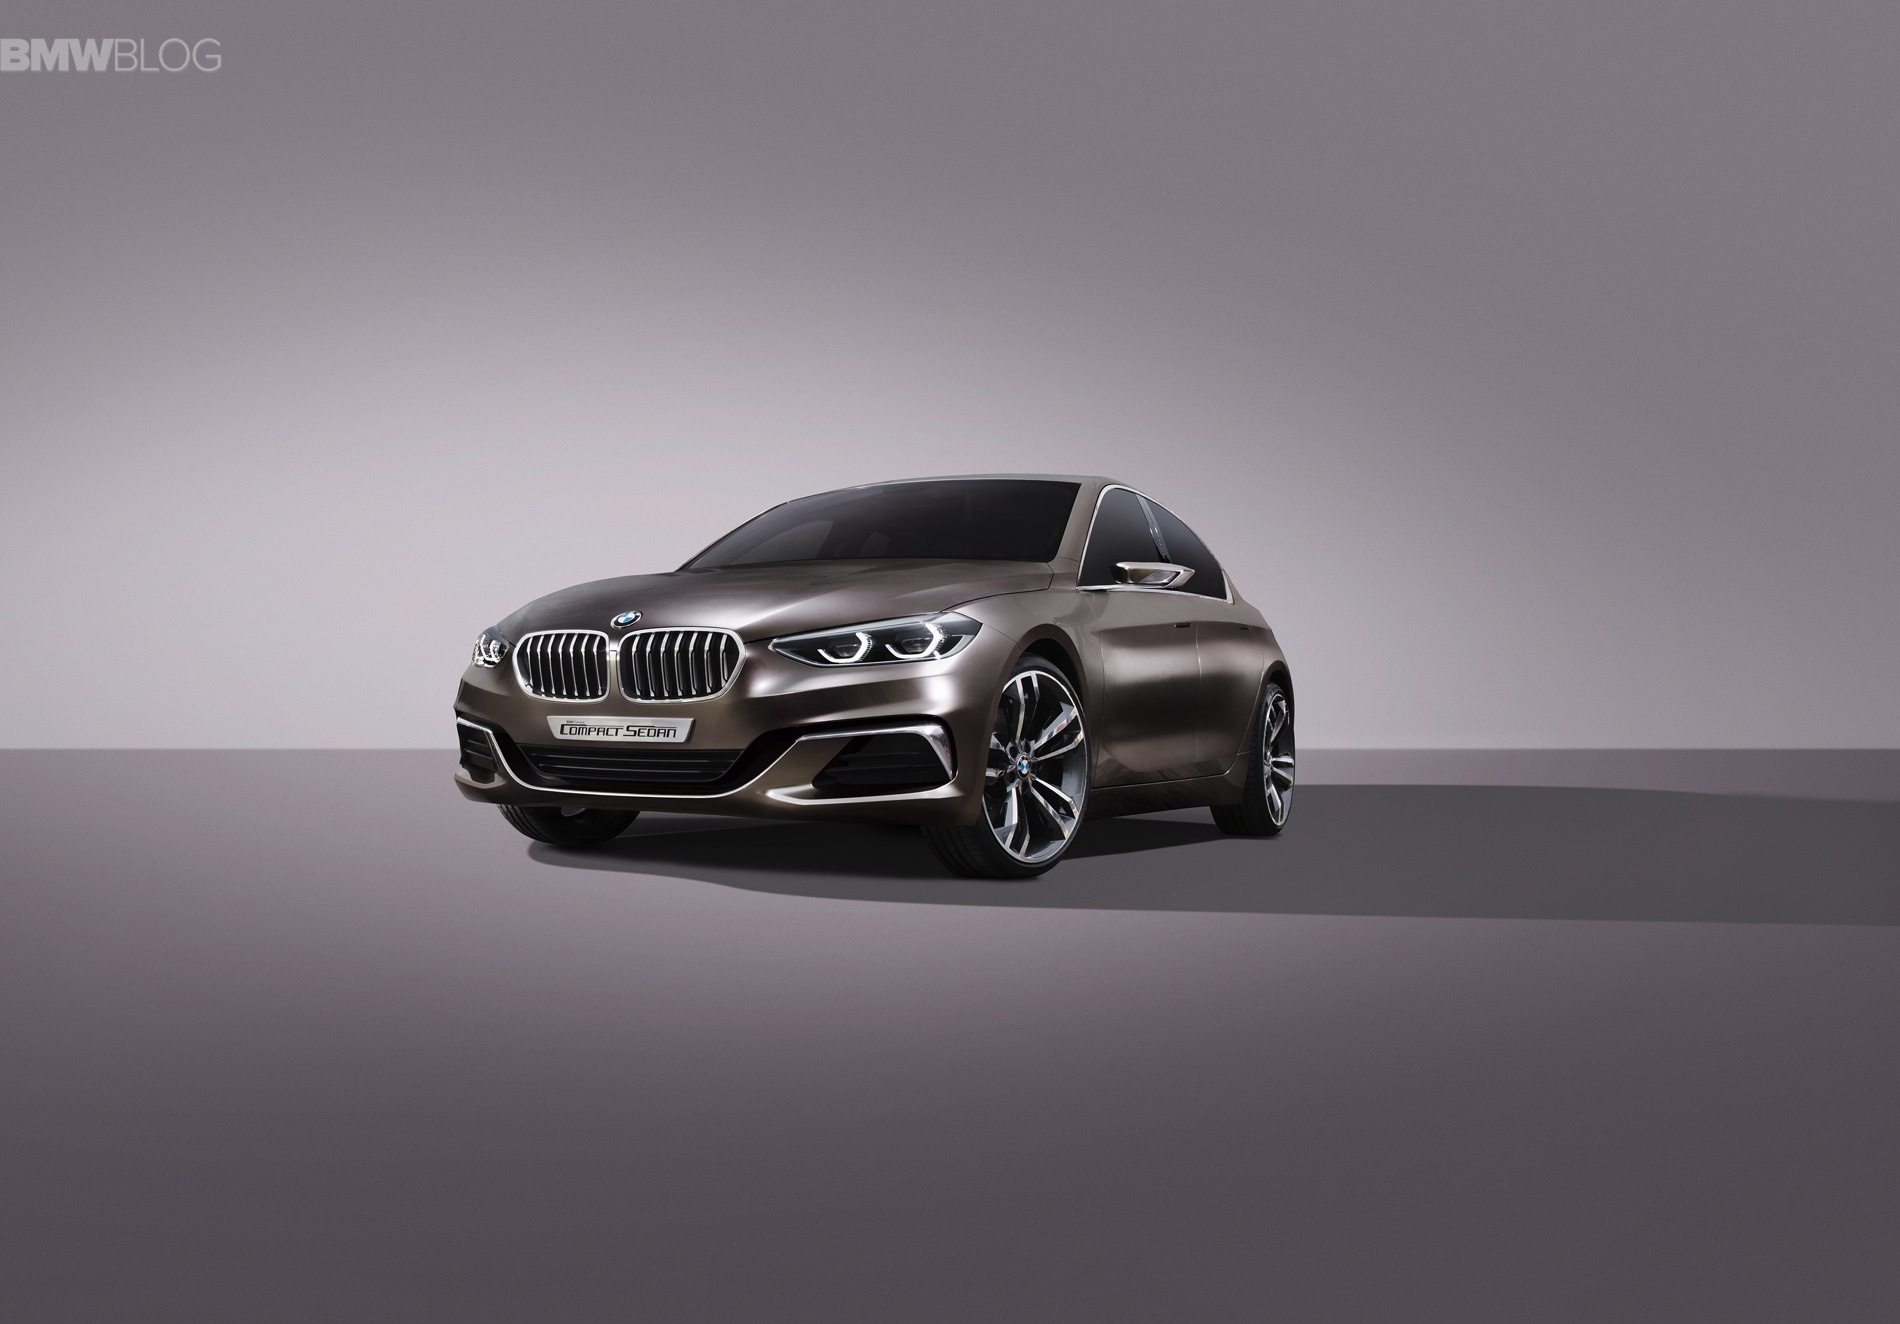 BMW Concept Compact Sedan images 2